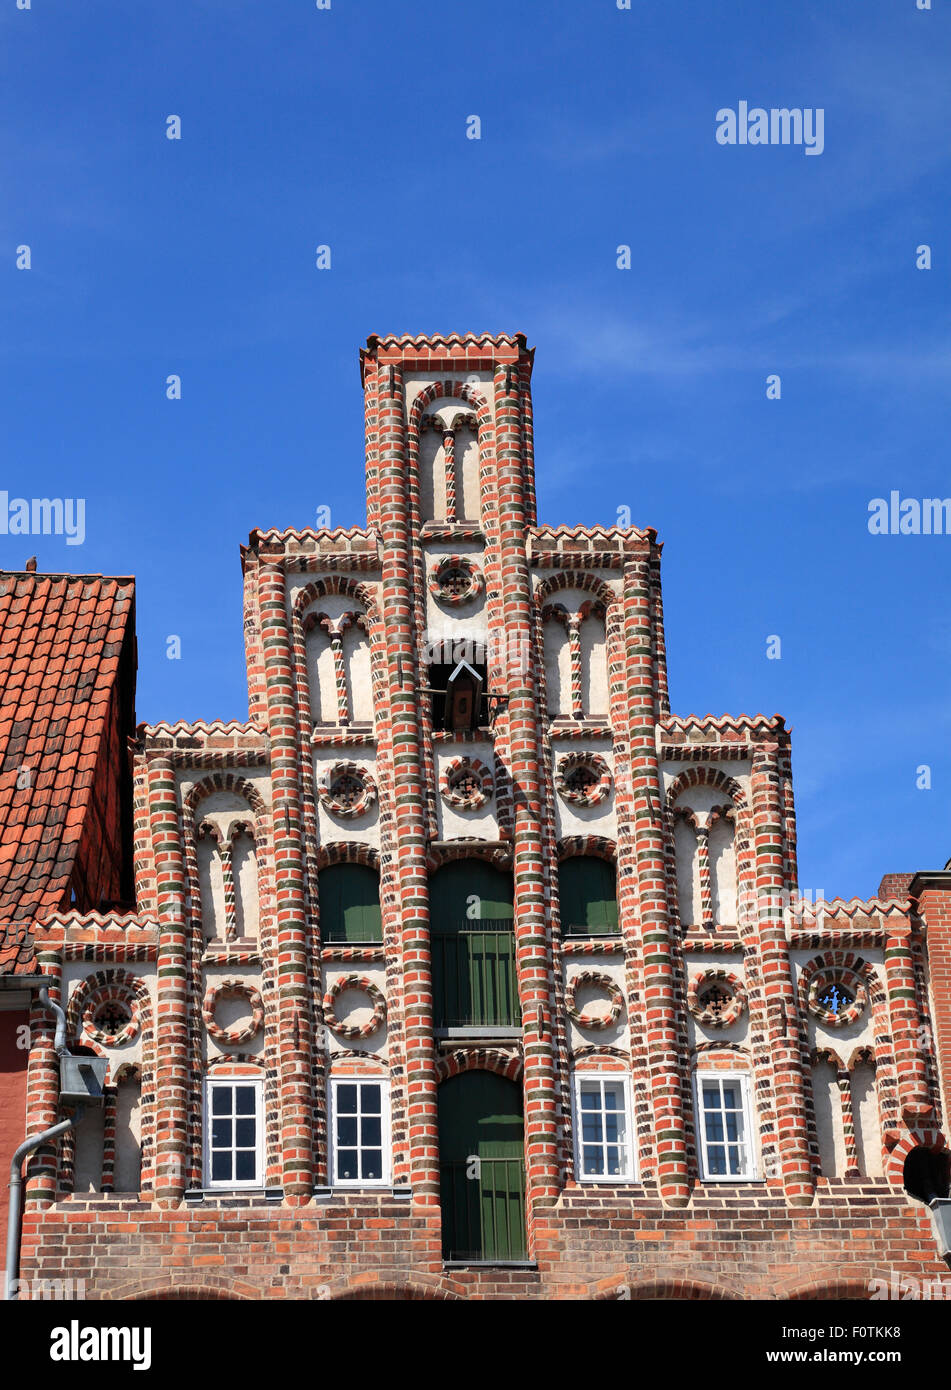 Gable at square Am Sande, Lueneburg, Lüneburg, Lower Saxony, Germany, Europe - Stock Image